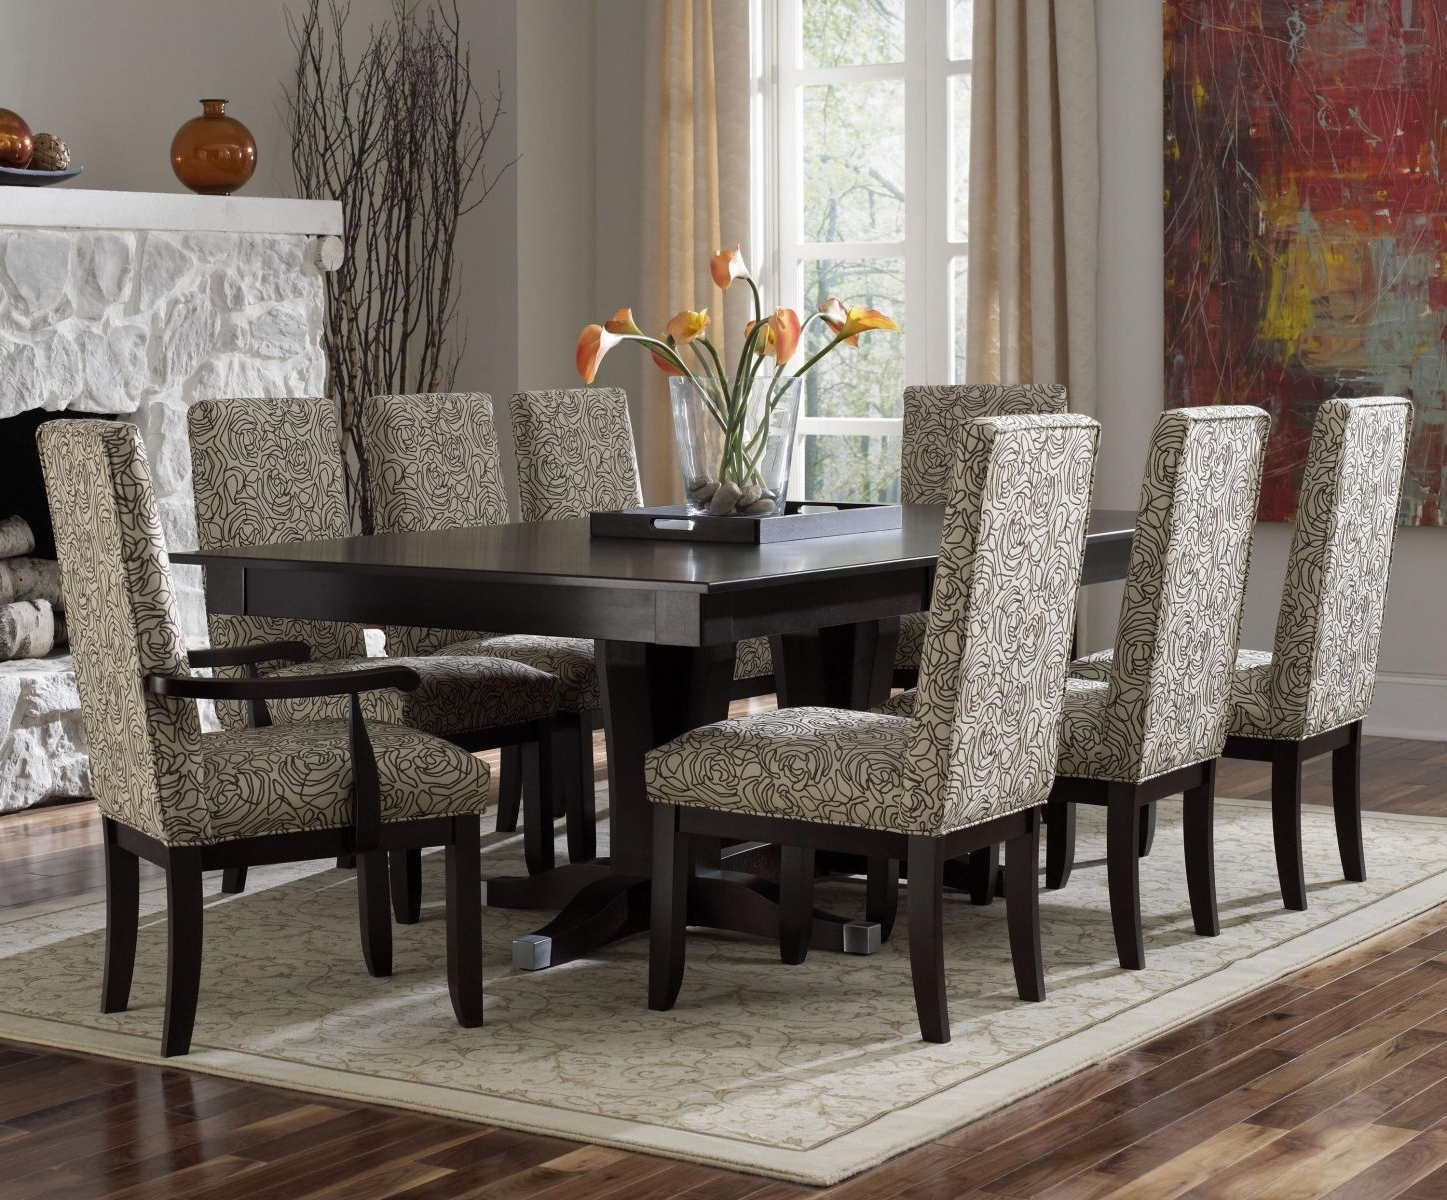 Dining Room Tables Regarding Fashionable Dining Room Contemporary Glass Dining Table Set Small Modern Dining (Gallery 25 of 25)